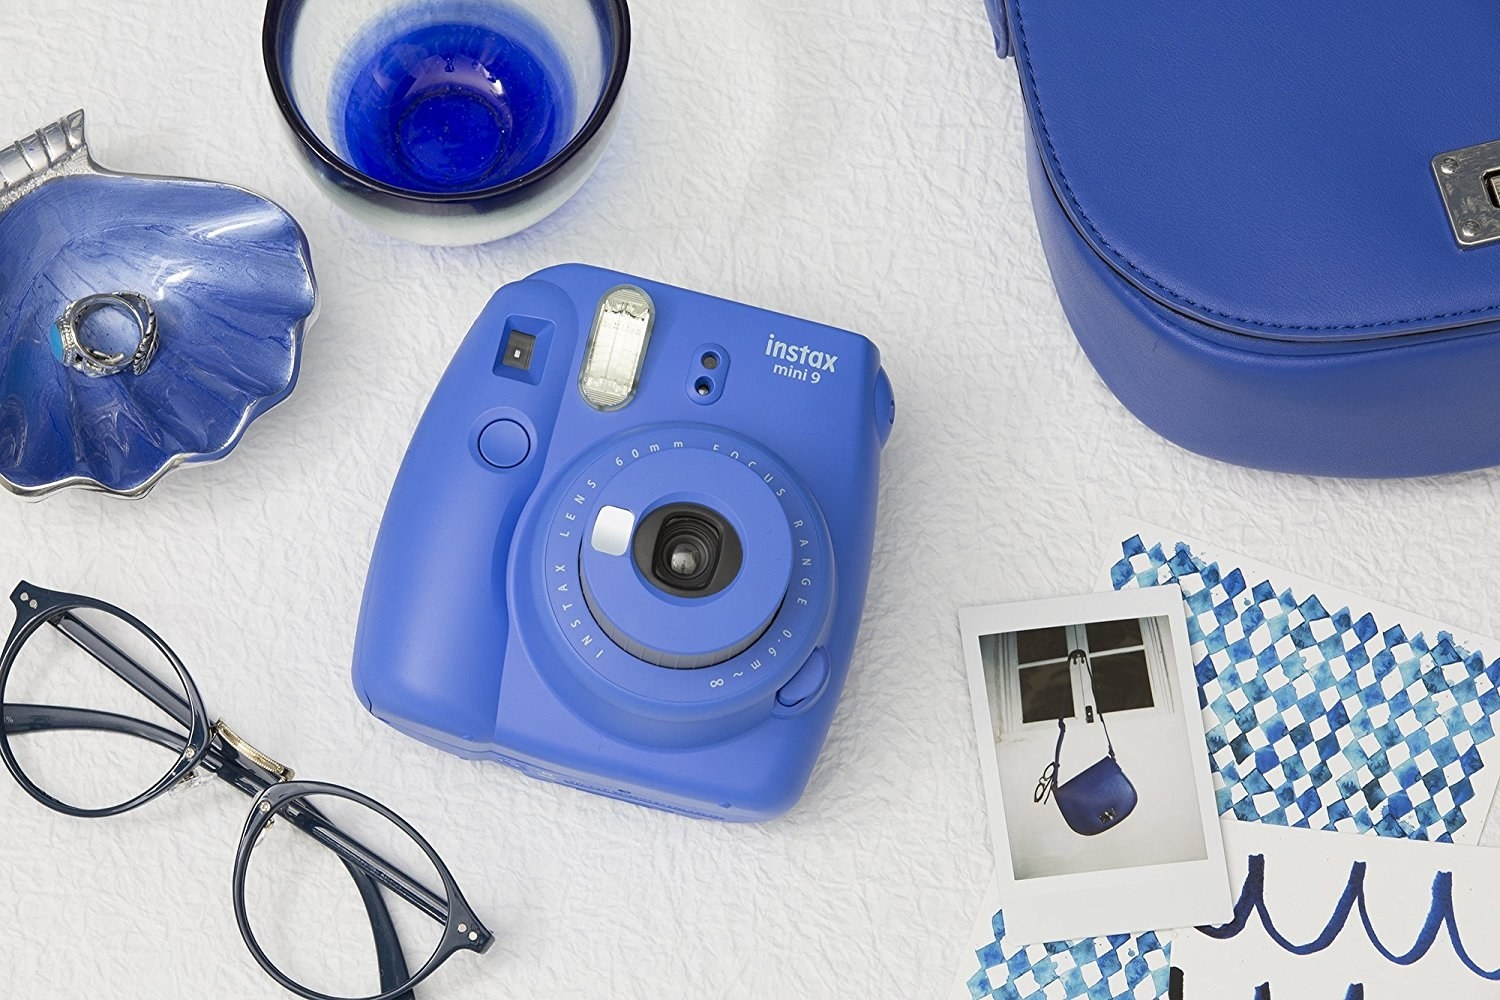 The instant camera in a square-like shape with a large lense in bright blue